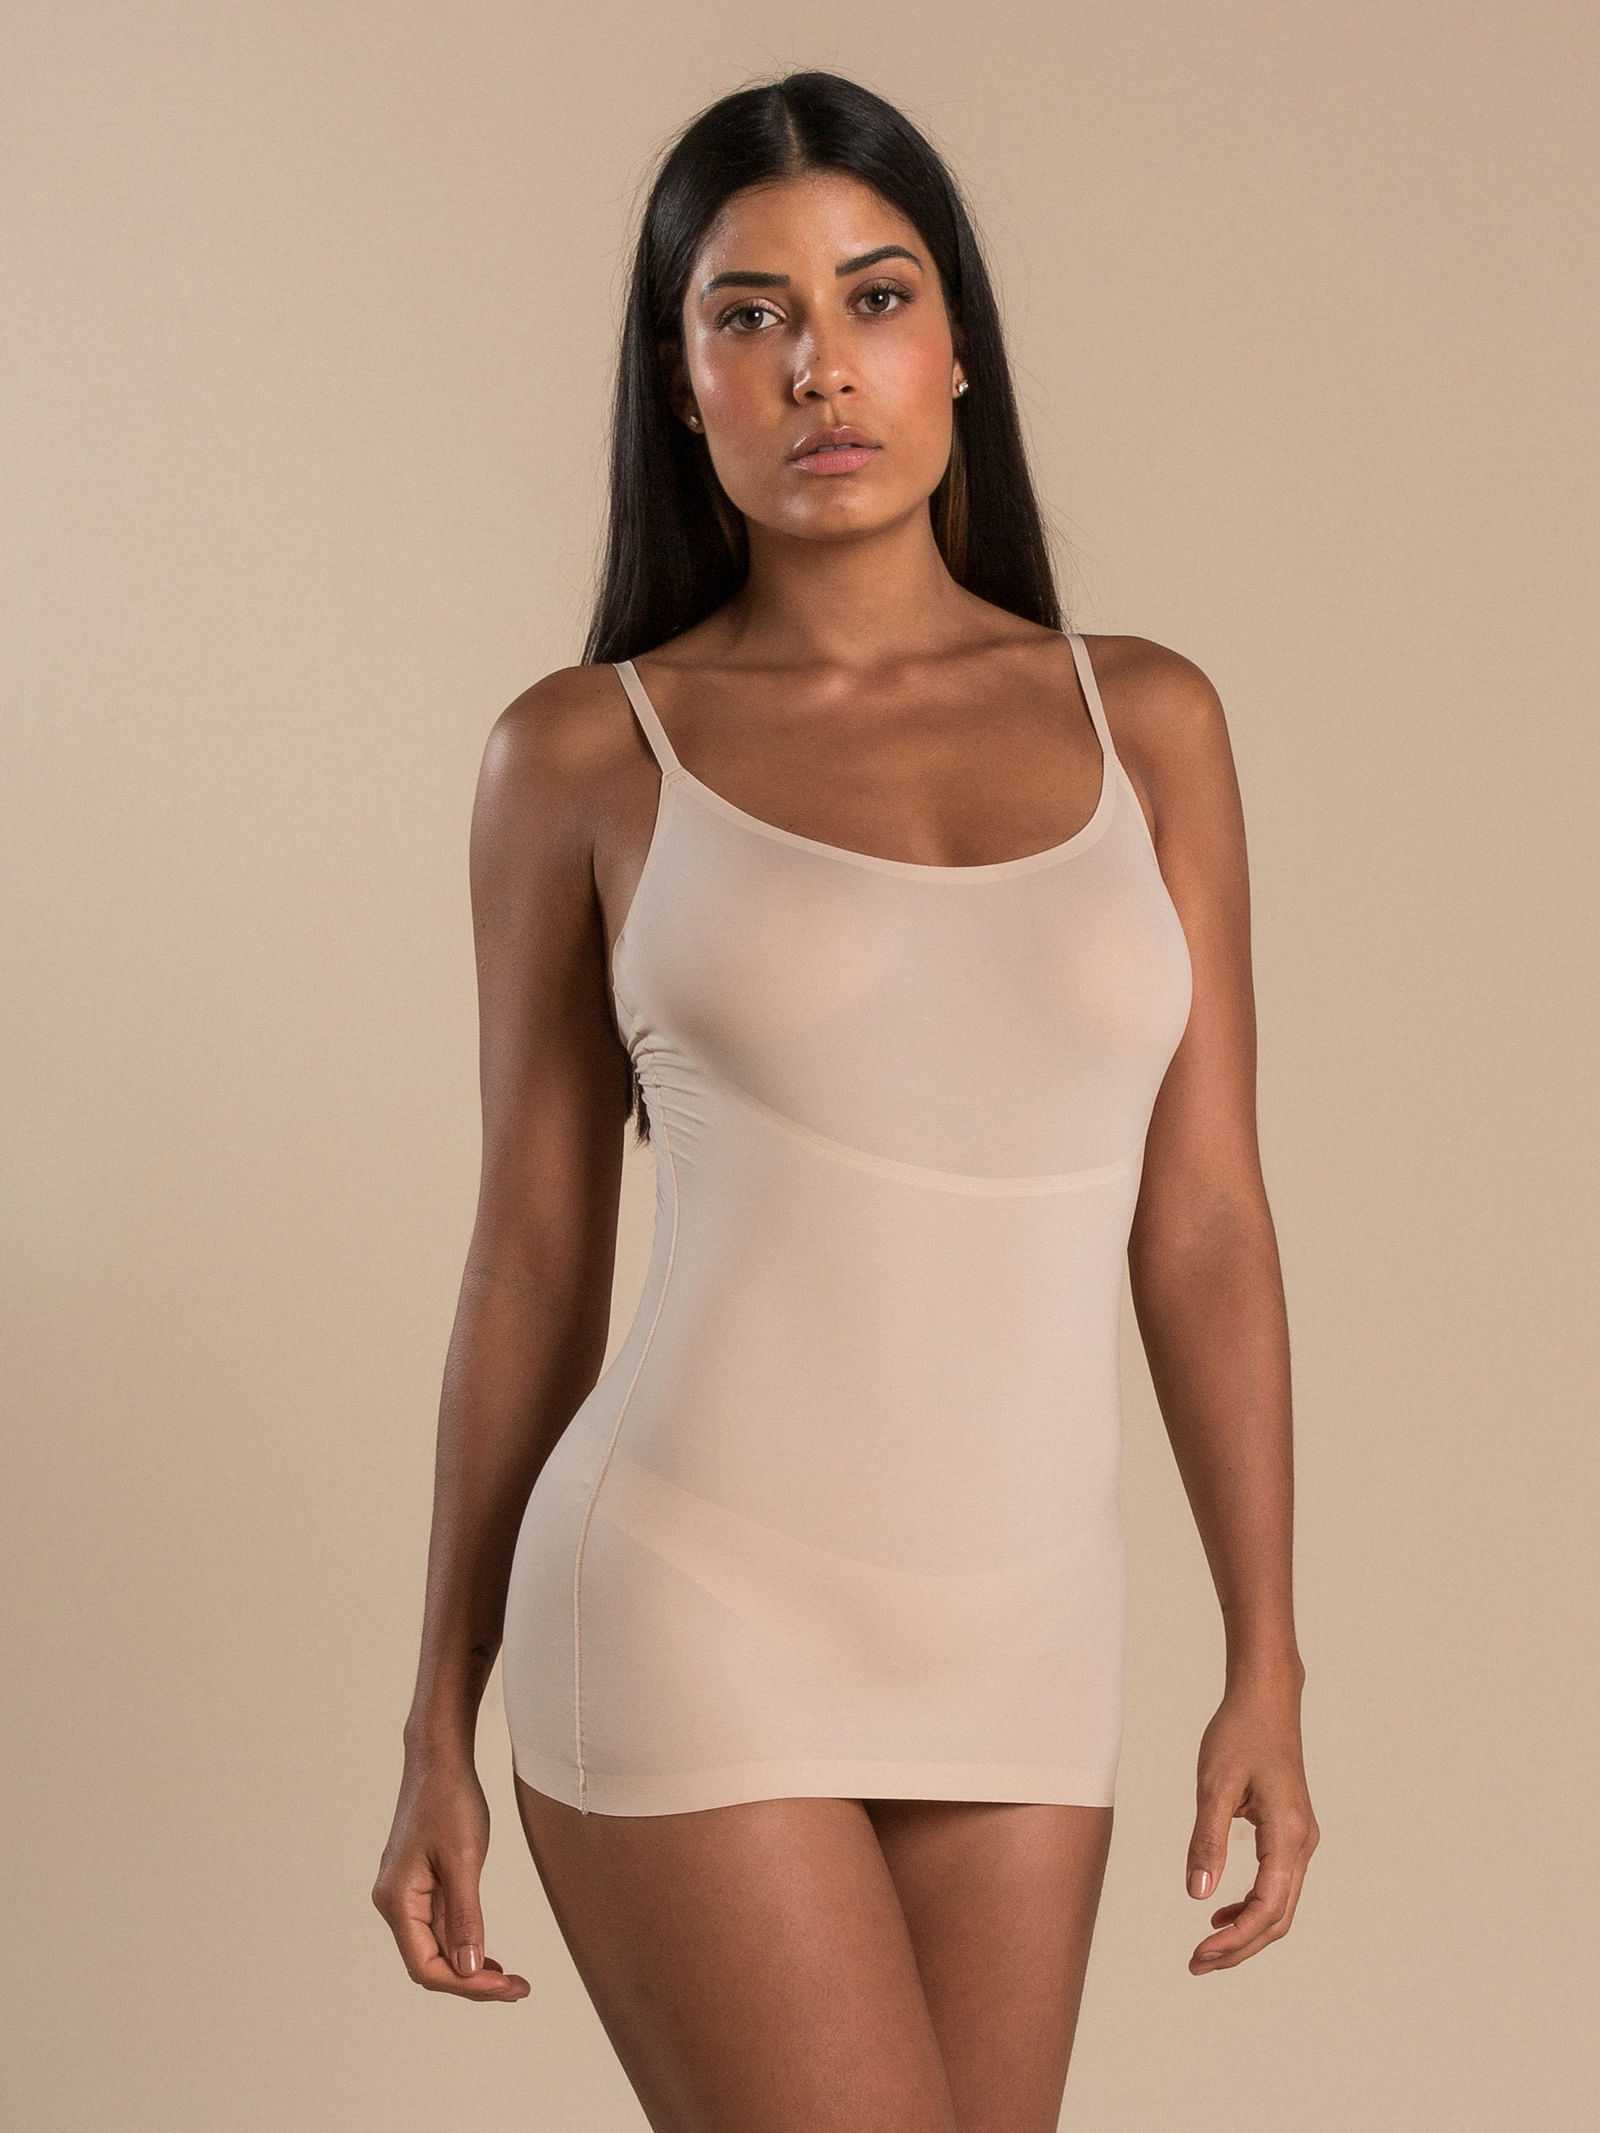 60050002_96_2-TOP-SMG-SHAPEWEAR-THINSTINCTS